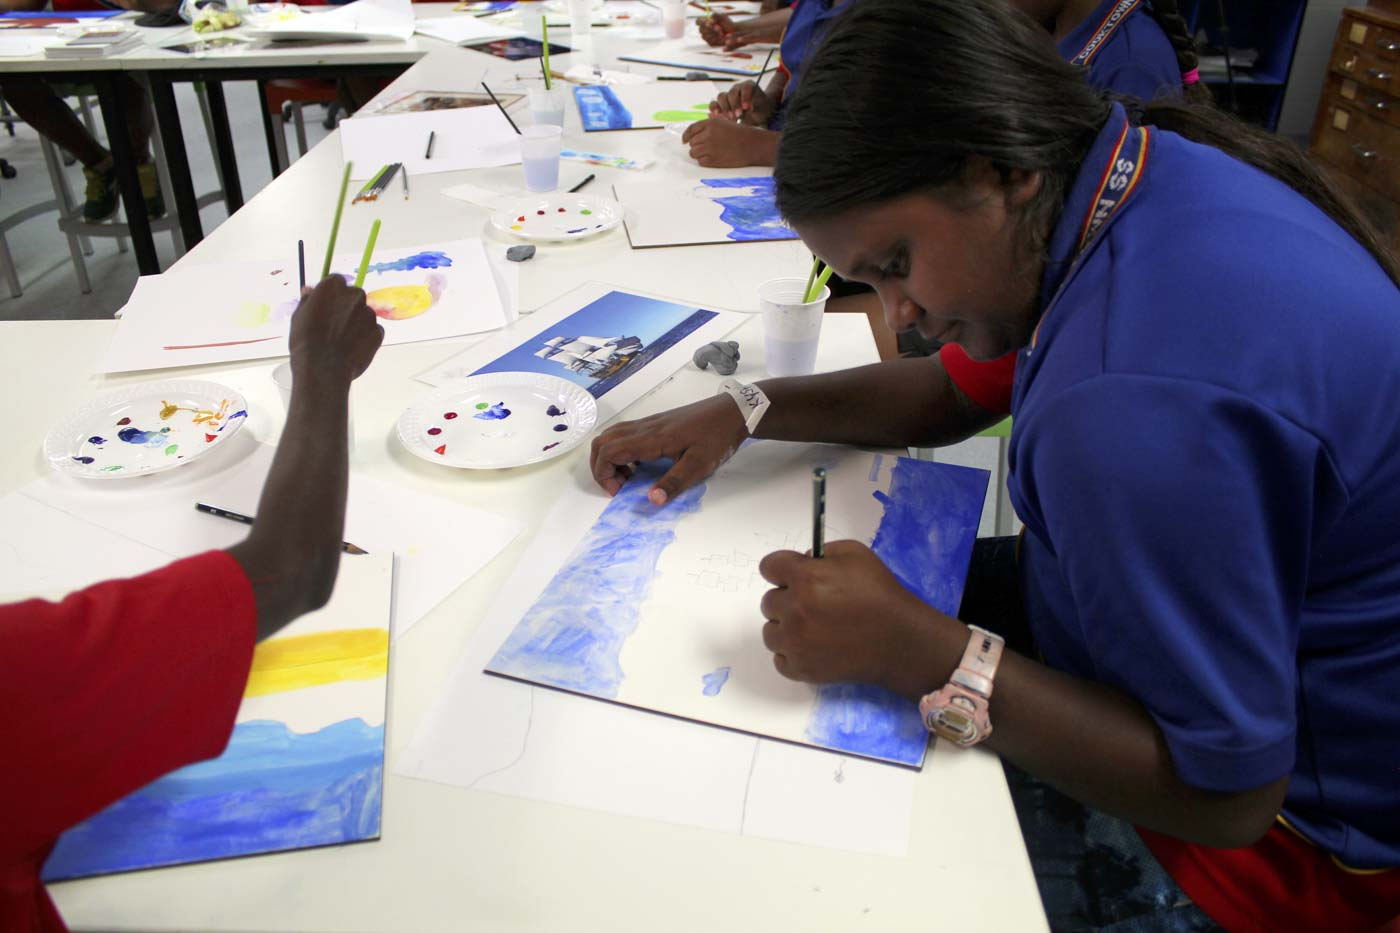 Primary school students attend a painting class. - click to view larger image